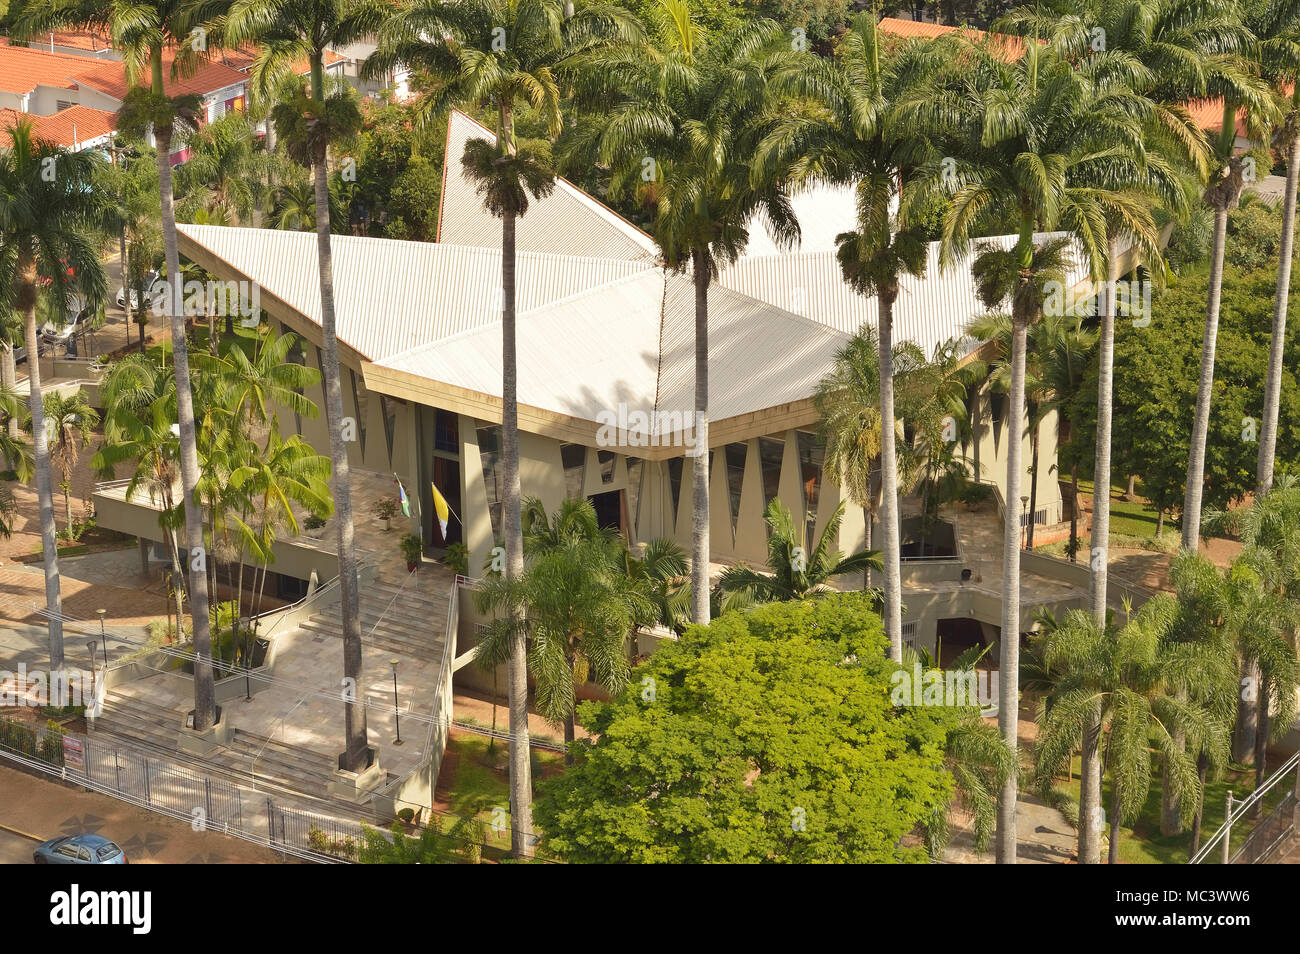 Campinas, SP/ Brazil - April 7, 2018: Sao Paulo Apostolo church and its unique architecture seen from high angle Stock Photo